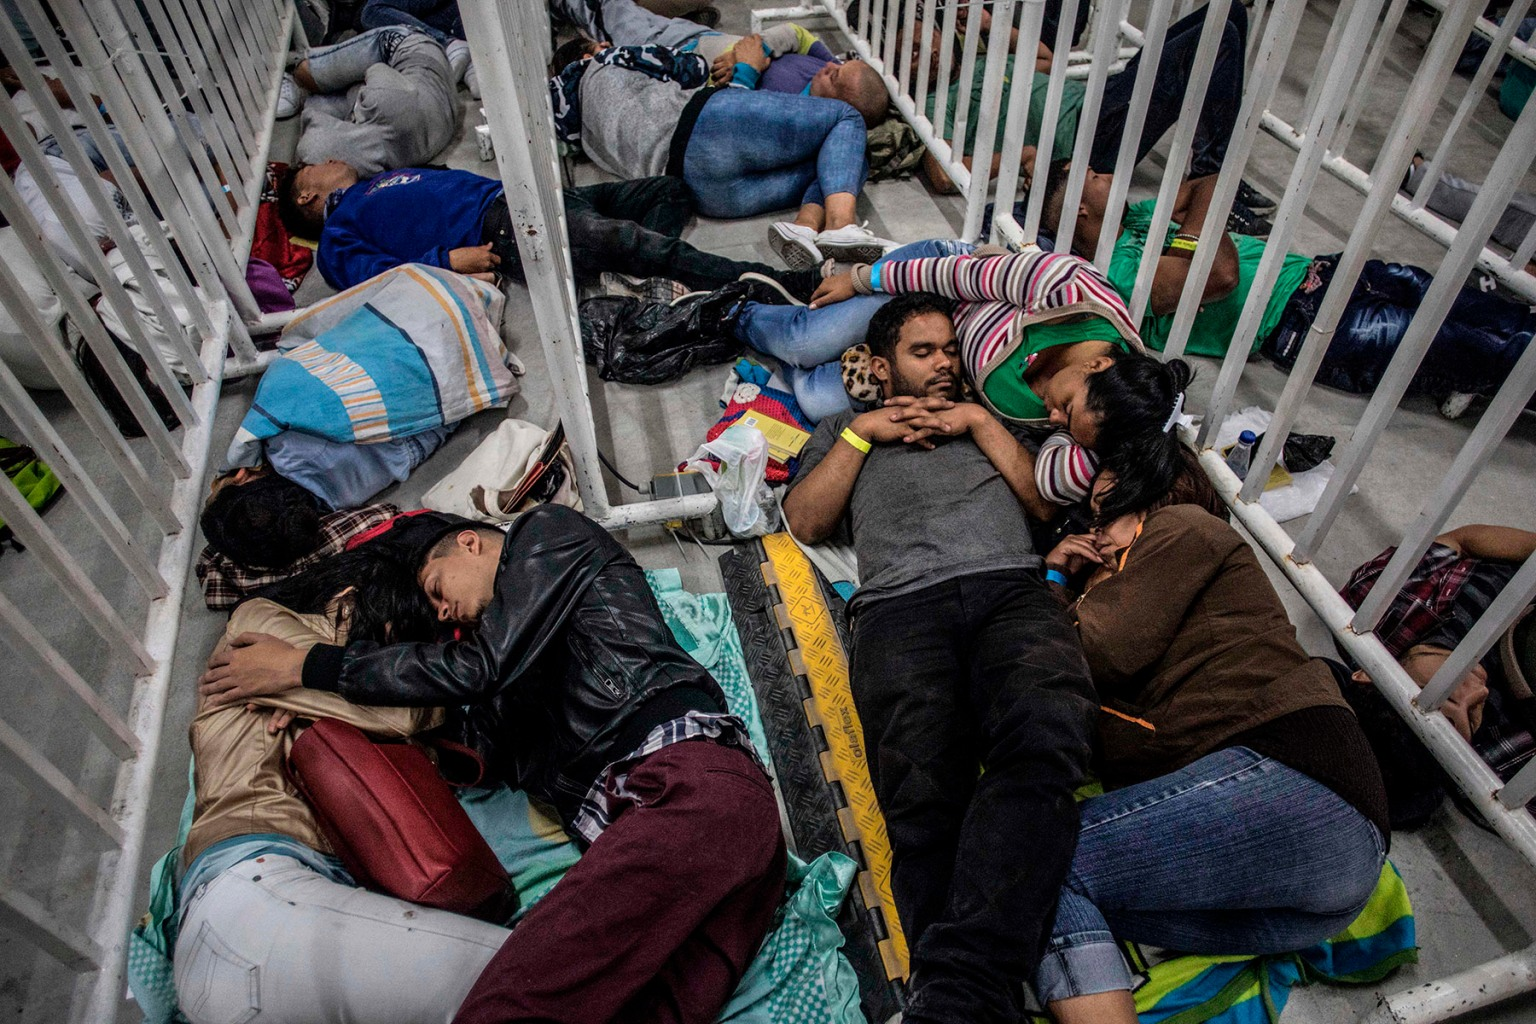 Venezuelans migrants sleep as they wait to attend the second Job Fair for Venezuelans in Colombia, on Sept. 27. JOAQUIN SARMIENTO/AFP/Getty Images